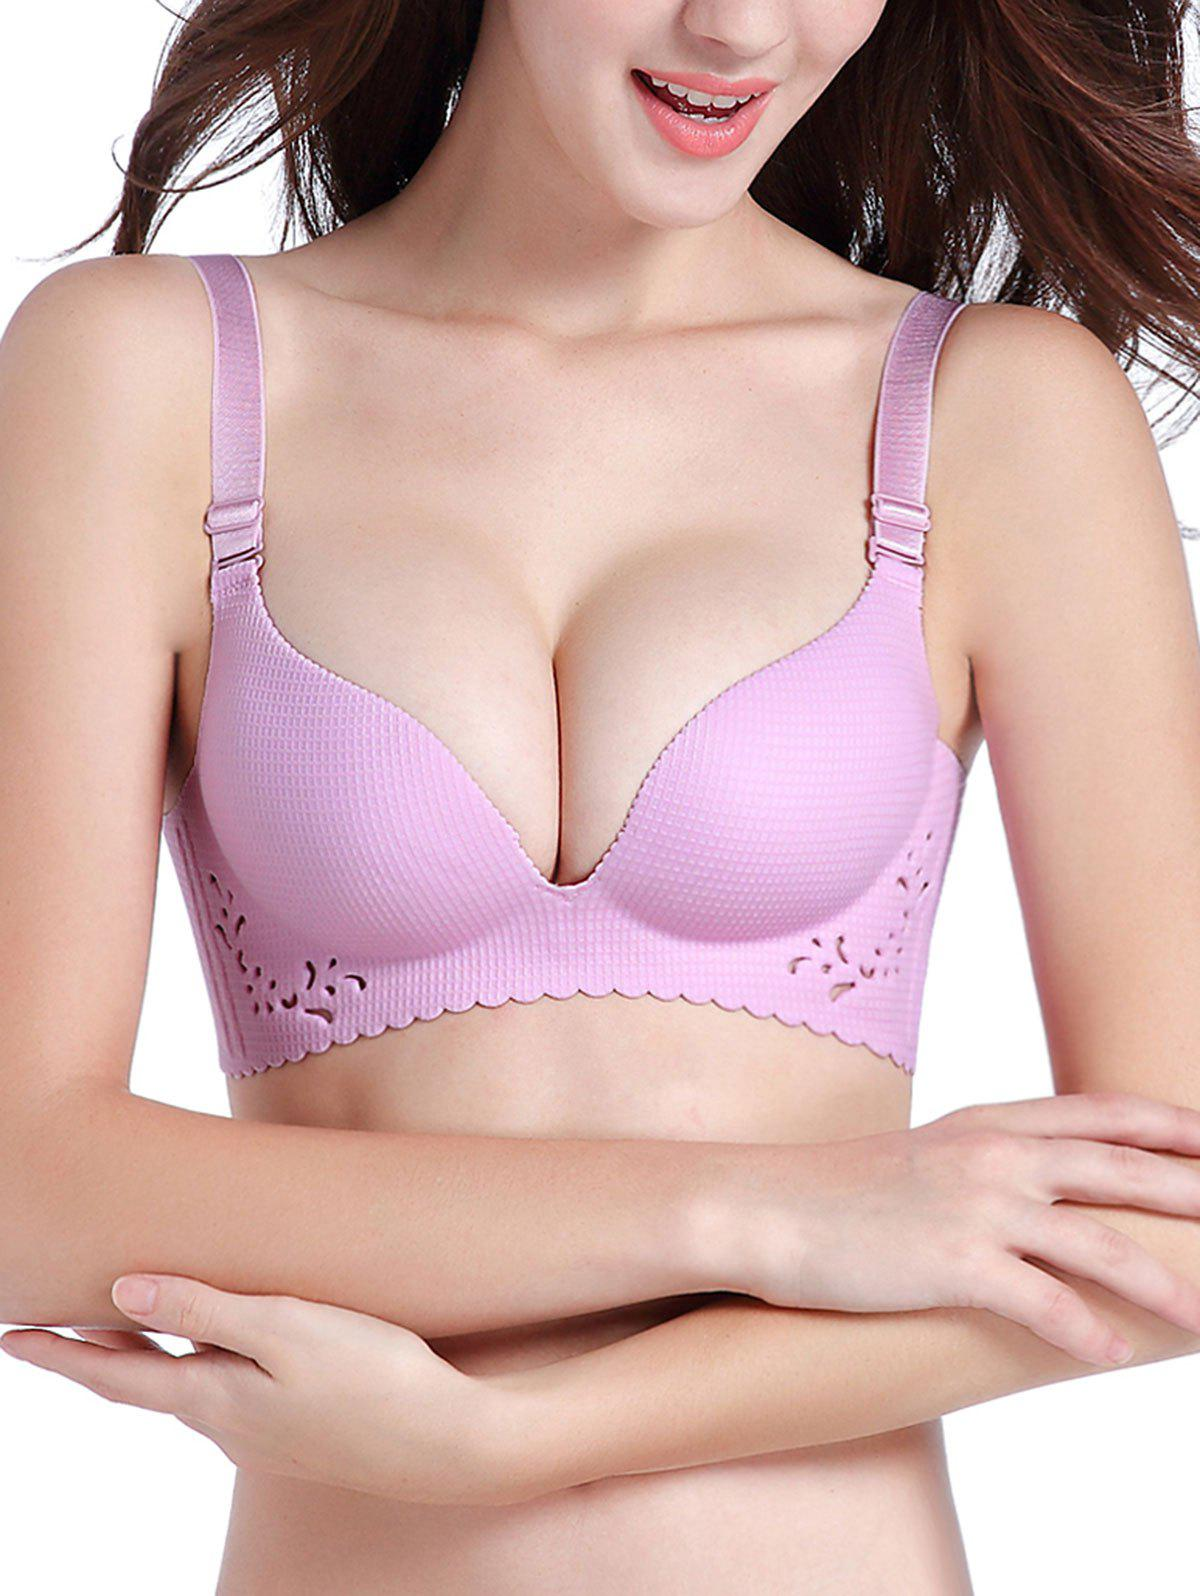 Scallop Trim Openwork Seamless Bra - LIGHT PURPLE 70A